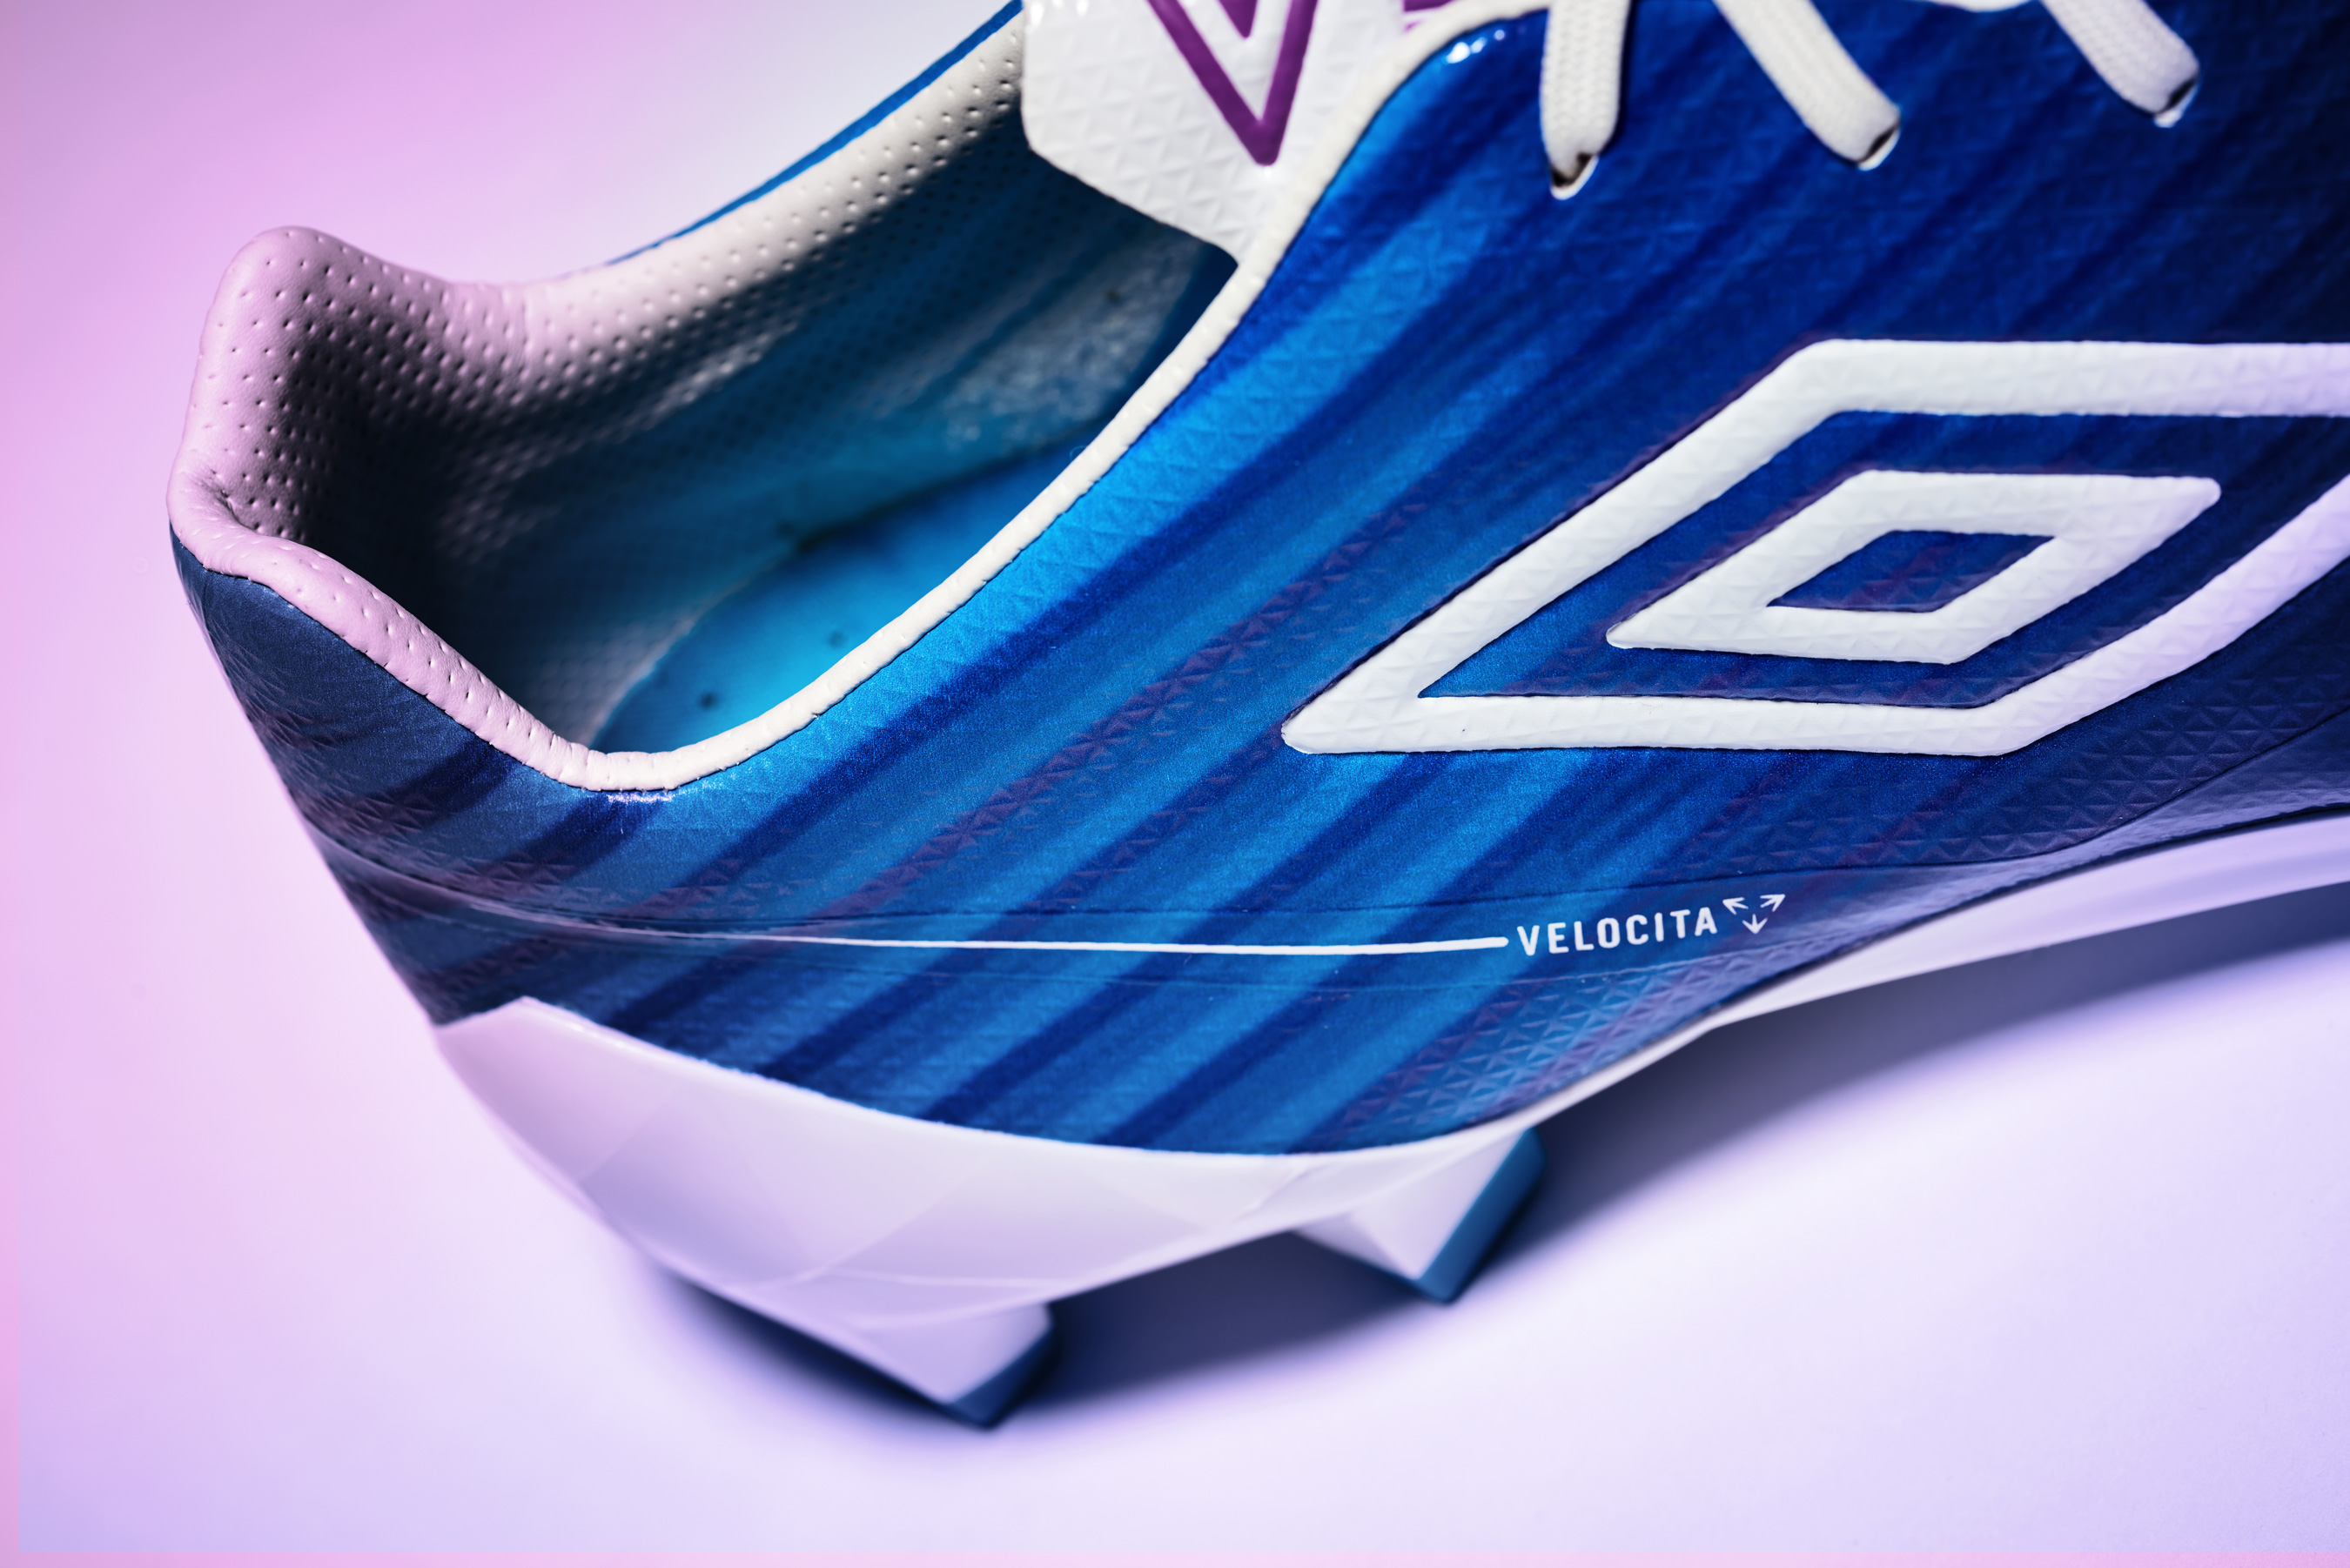 ms_umbro_aw16_velocita_blue_colour_035